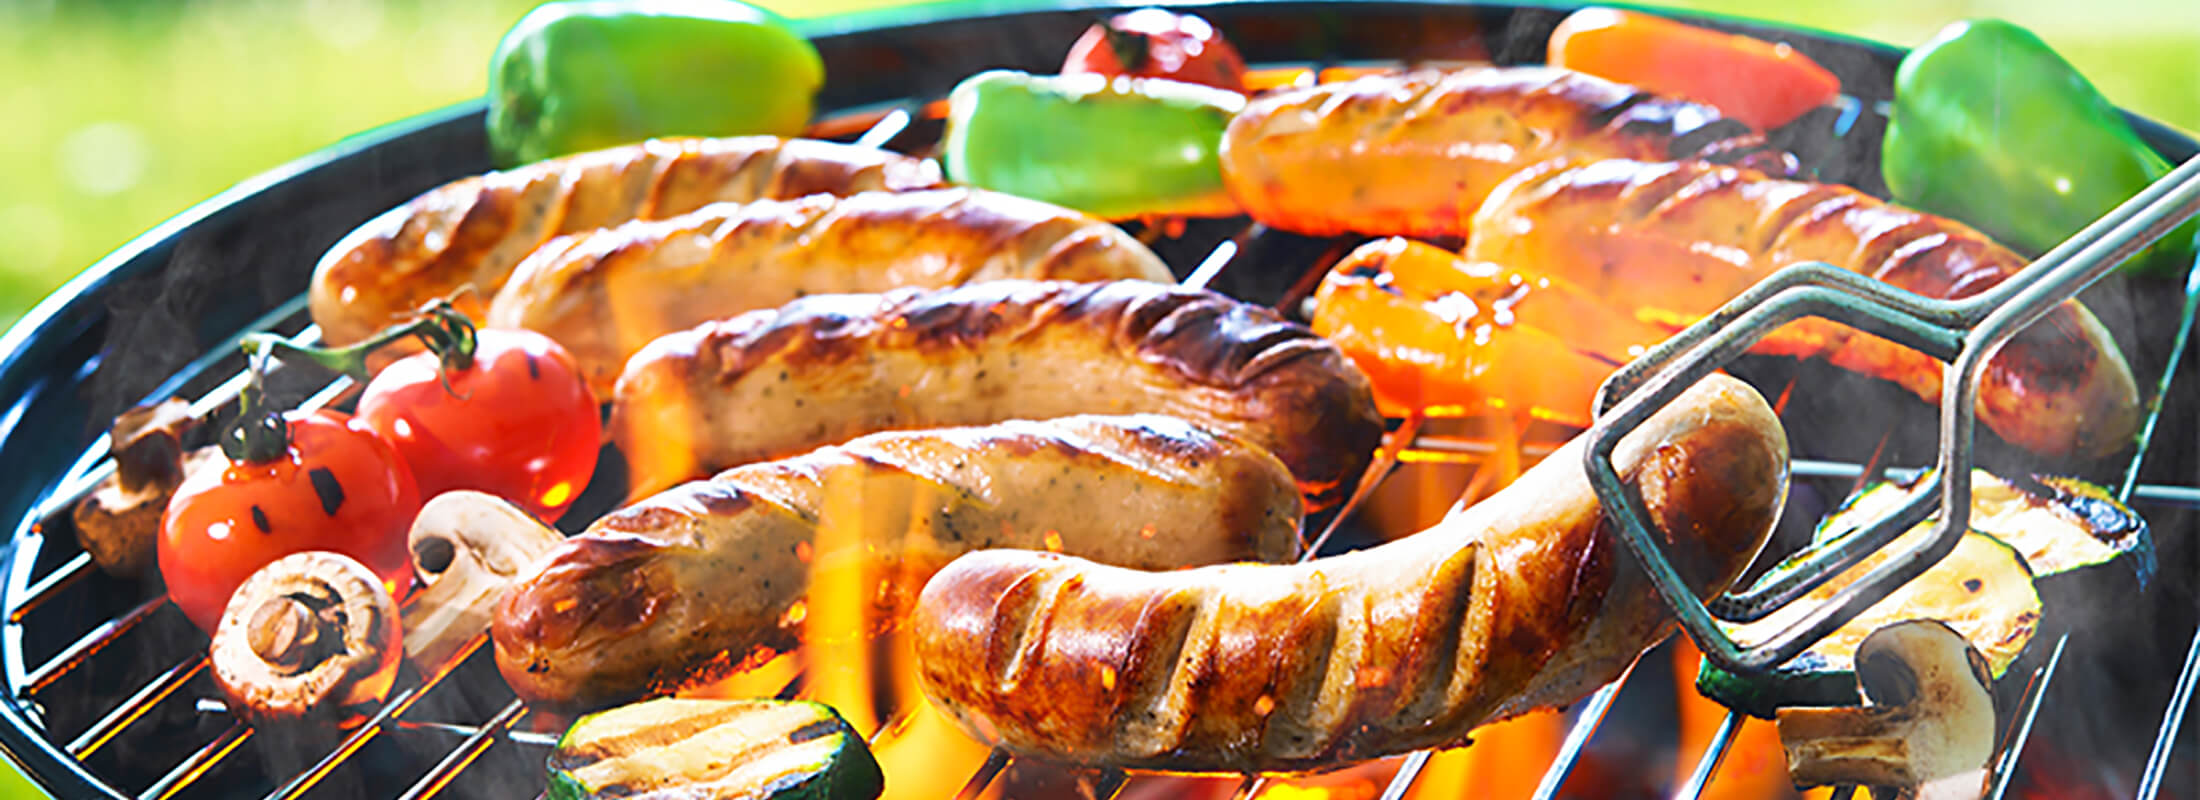 Gluten-free sausages with vegetables on a barbecue